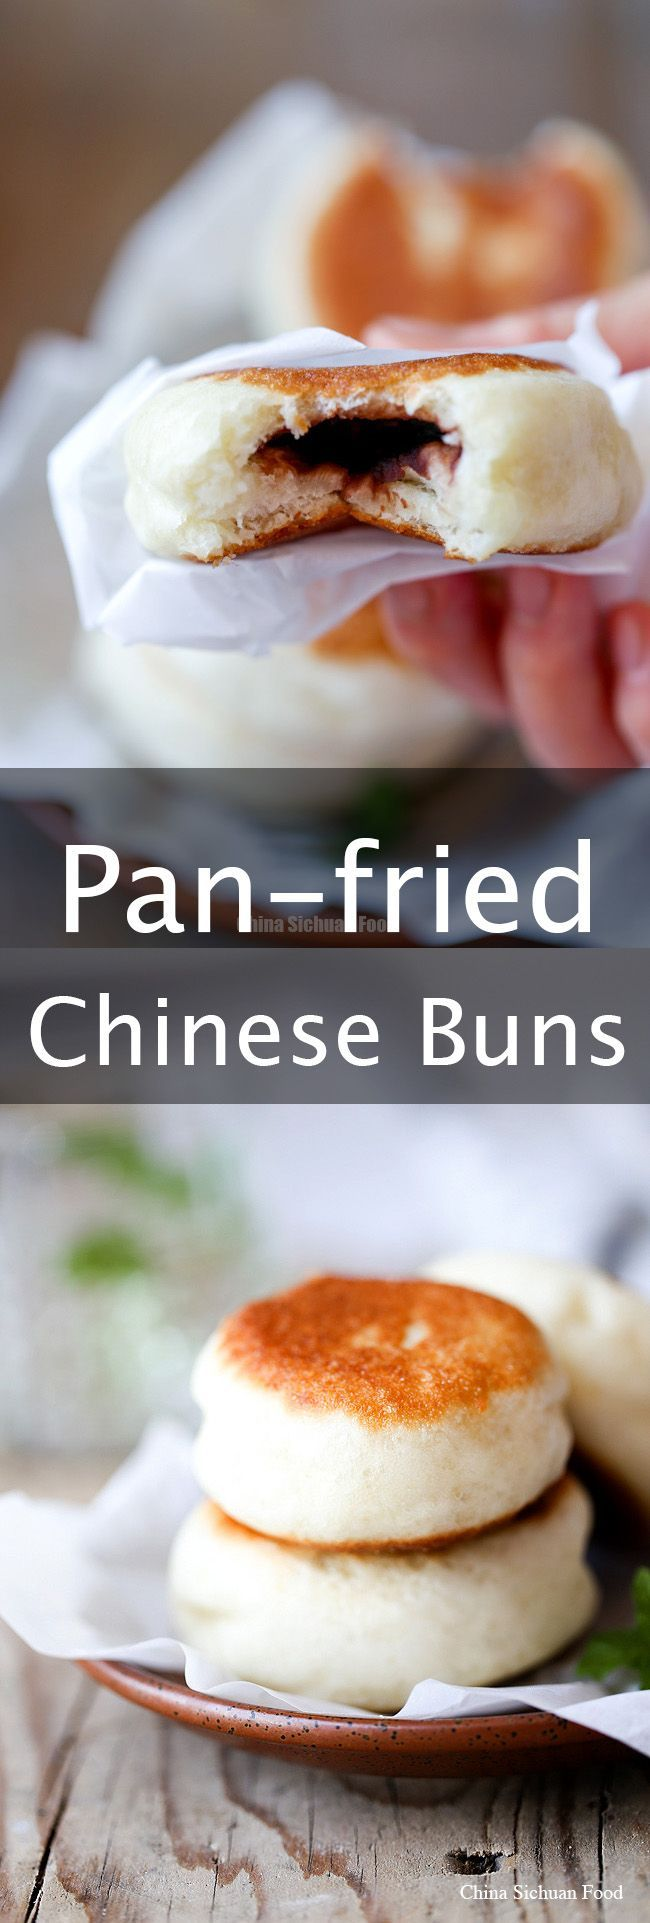 1428 best chinese food images on pinterest asian food recipes pan fried chinese buns chinese dessertsasian dessertschinese food recipesasian forumfinder Images